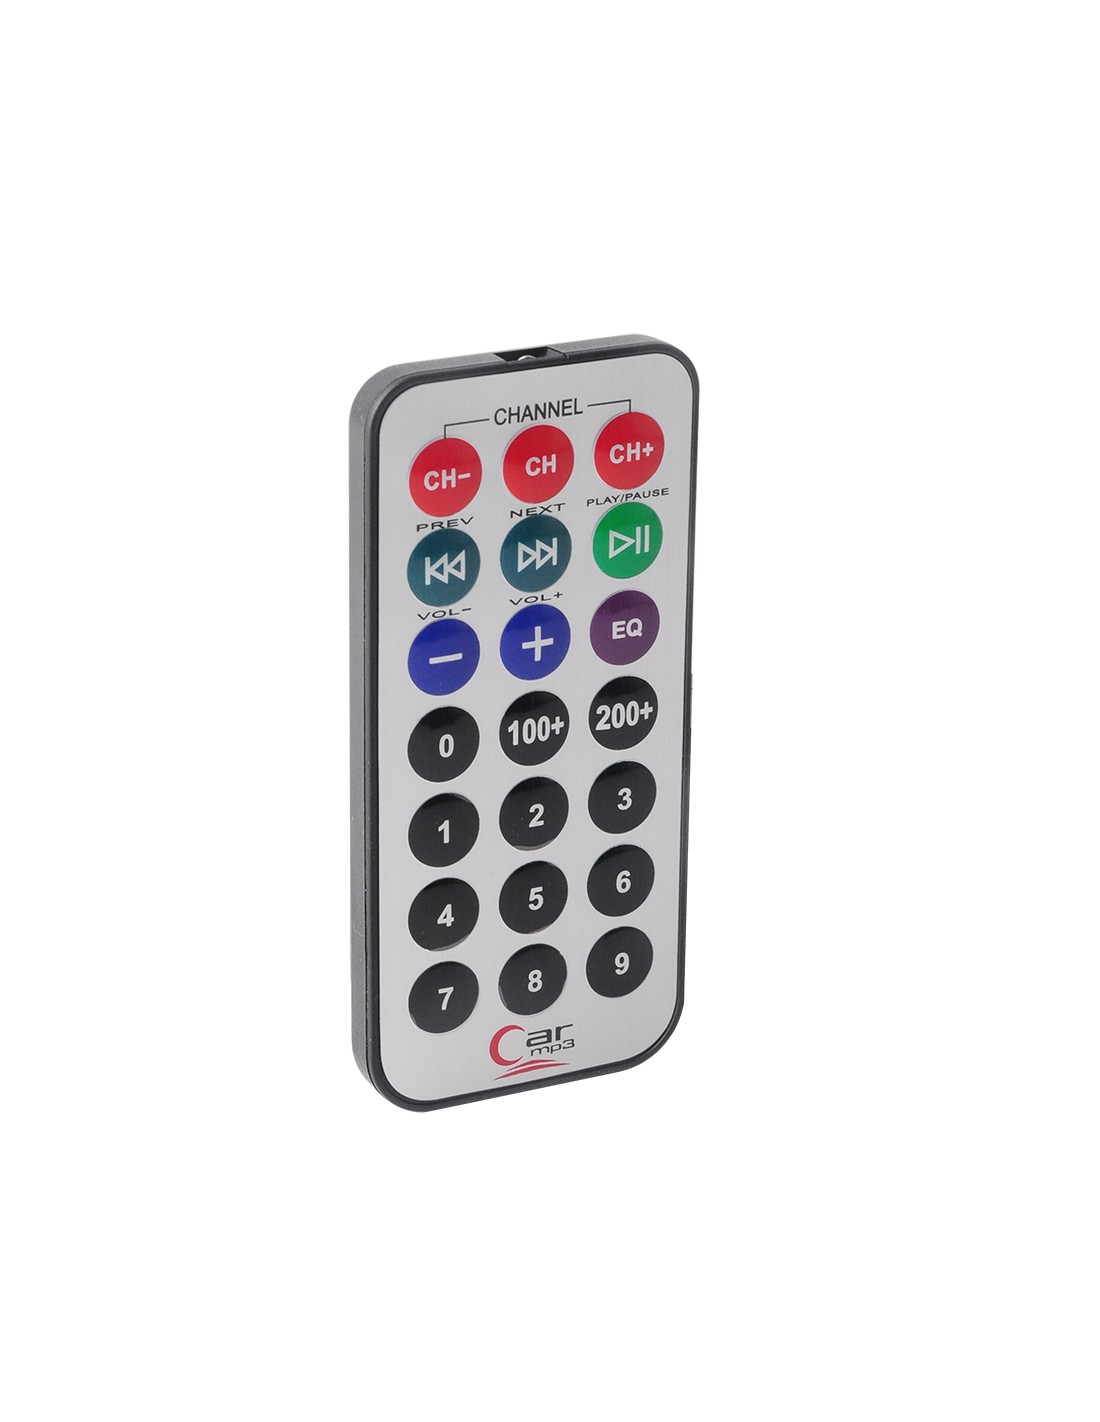 Ir Remote With Receiver Kit Infrared Control Arduino Raspberry Etc